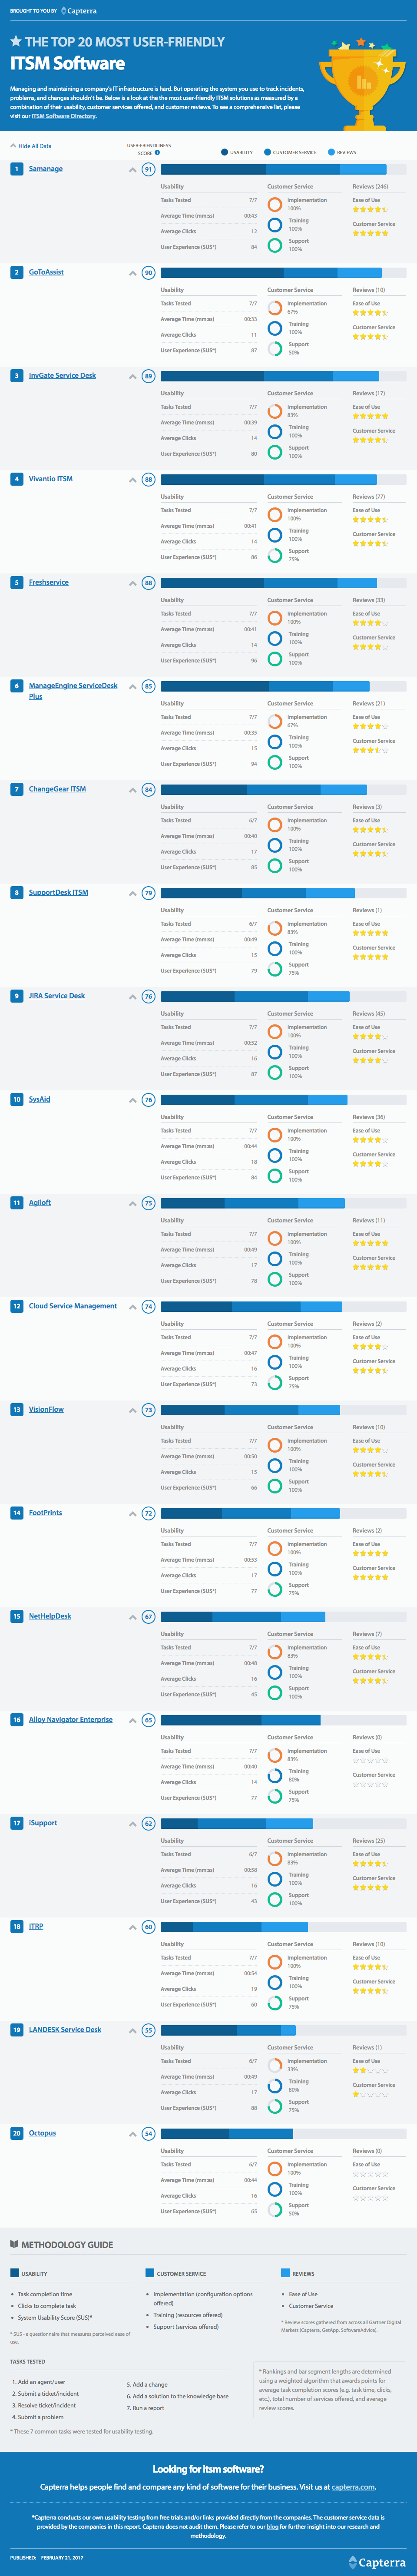 Top 20 Most User-Friendly ITSM Software